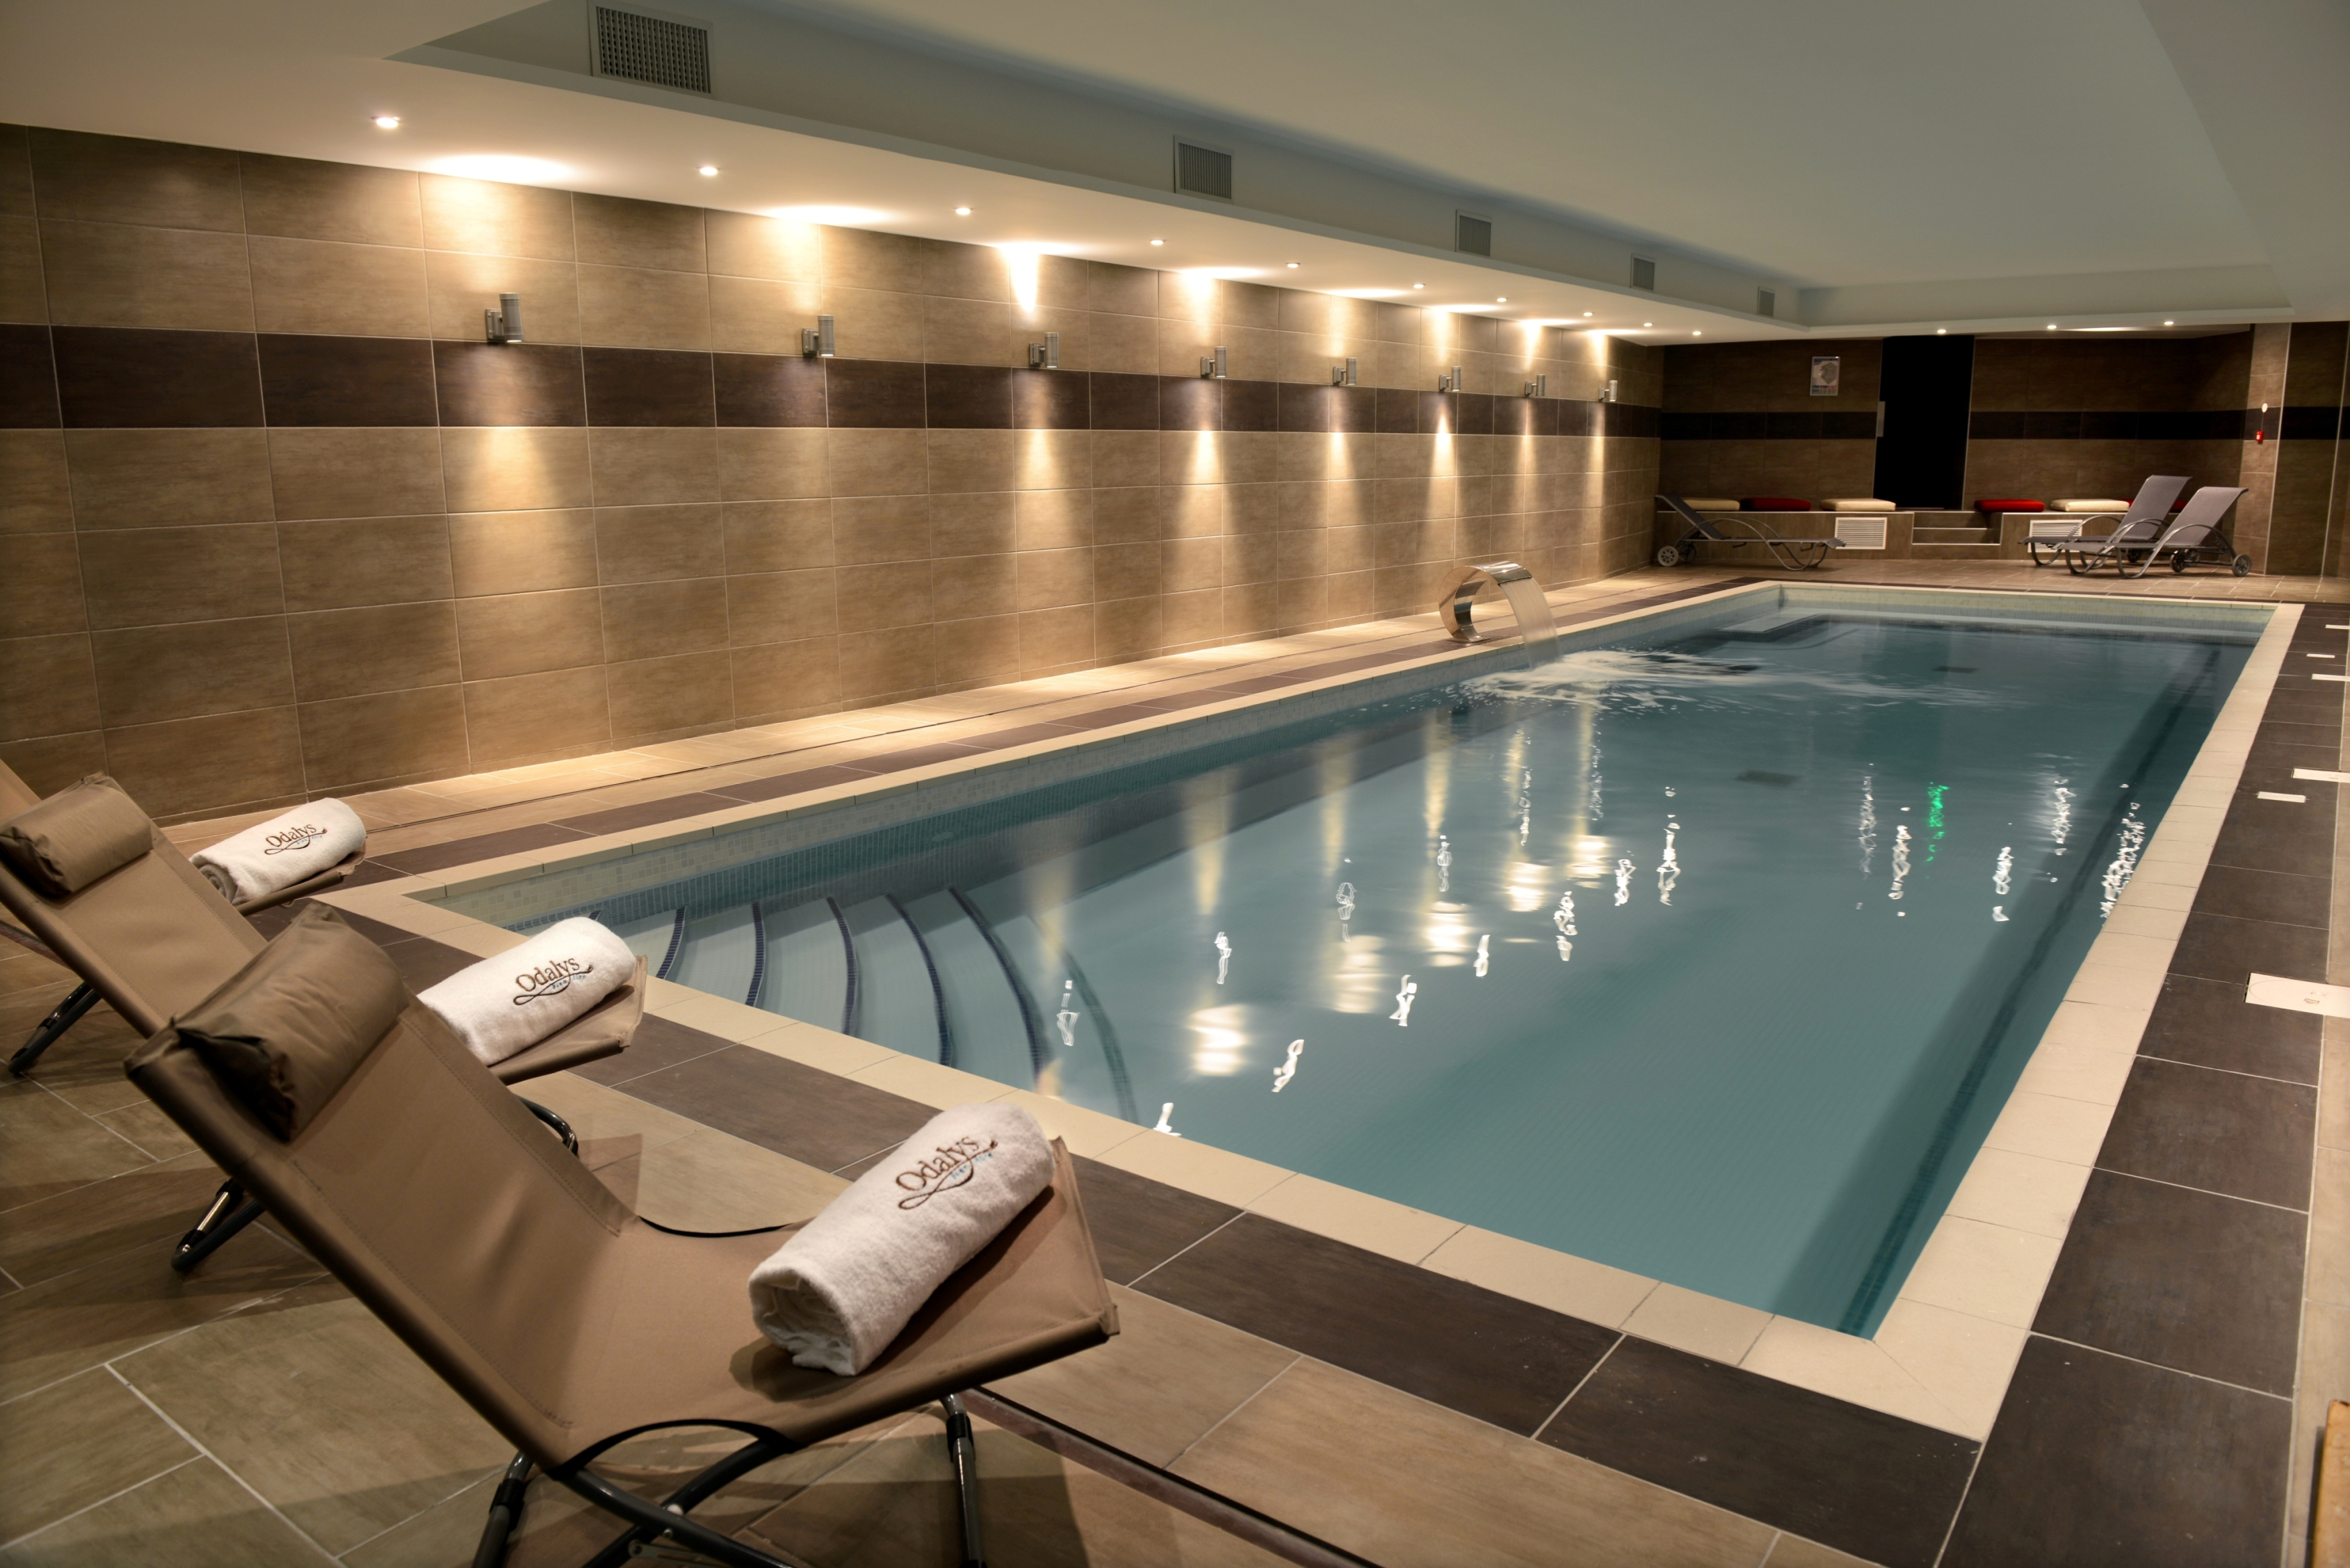 Le spa appart 39 h tel et spa ferney gen ve for Piscine et spa